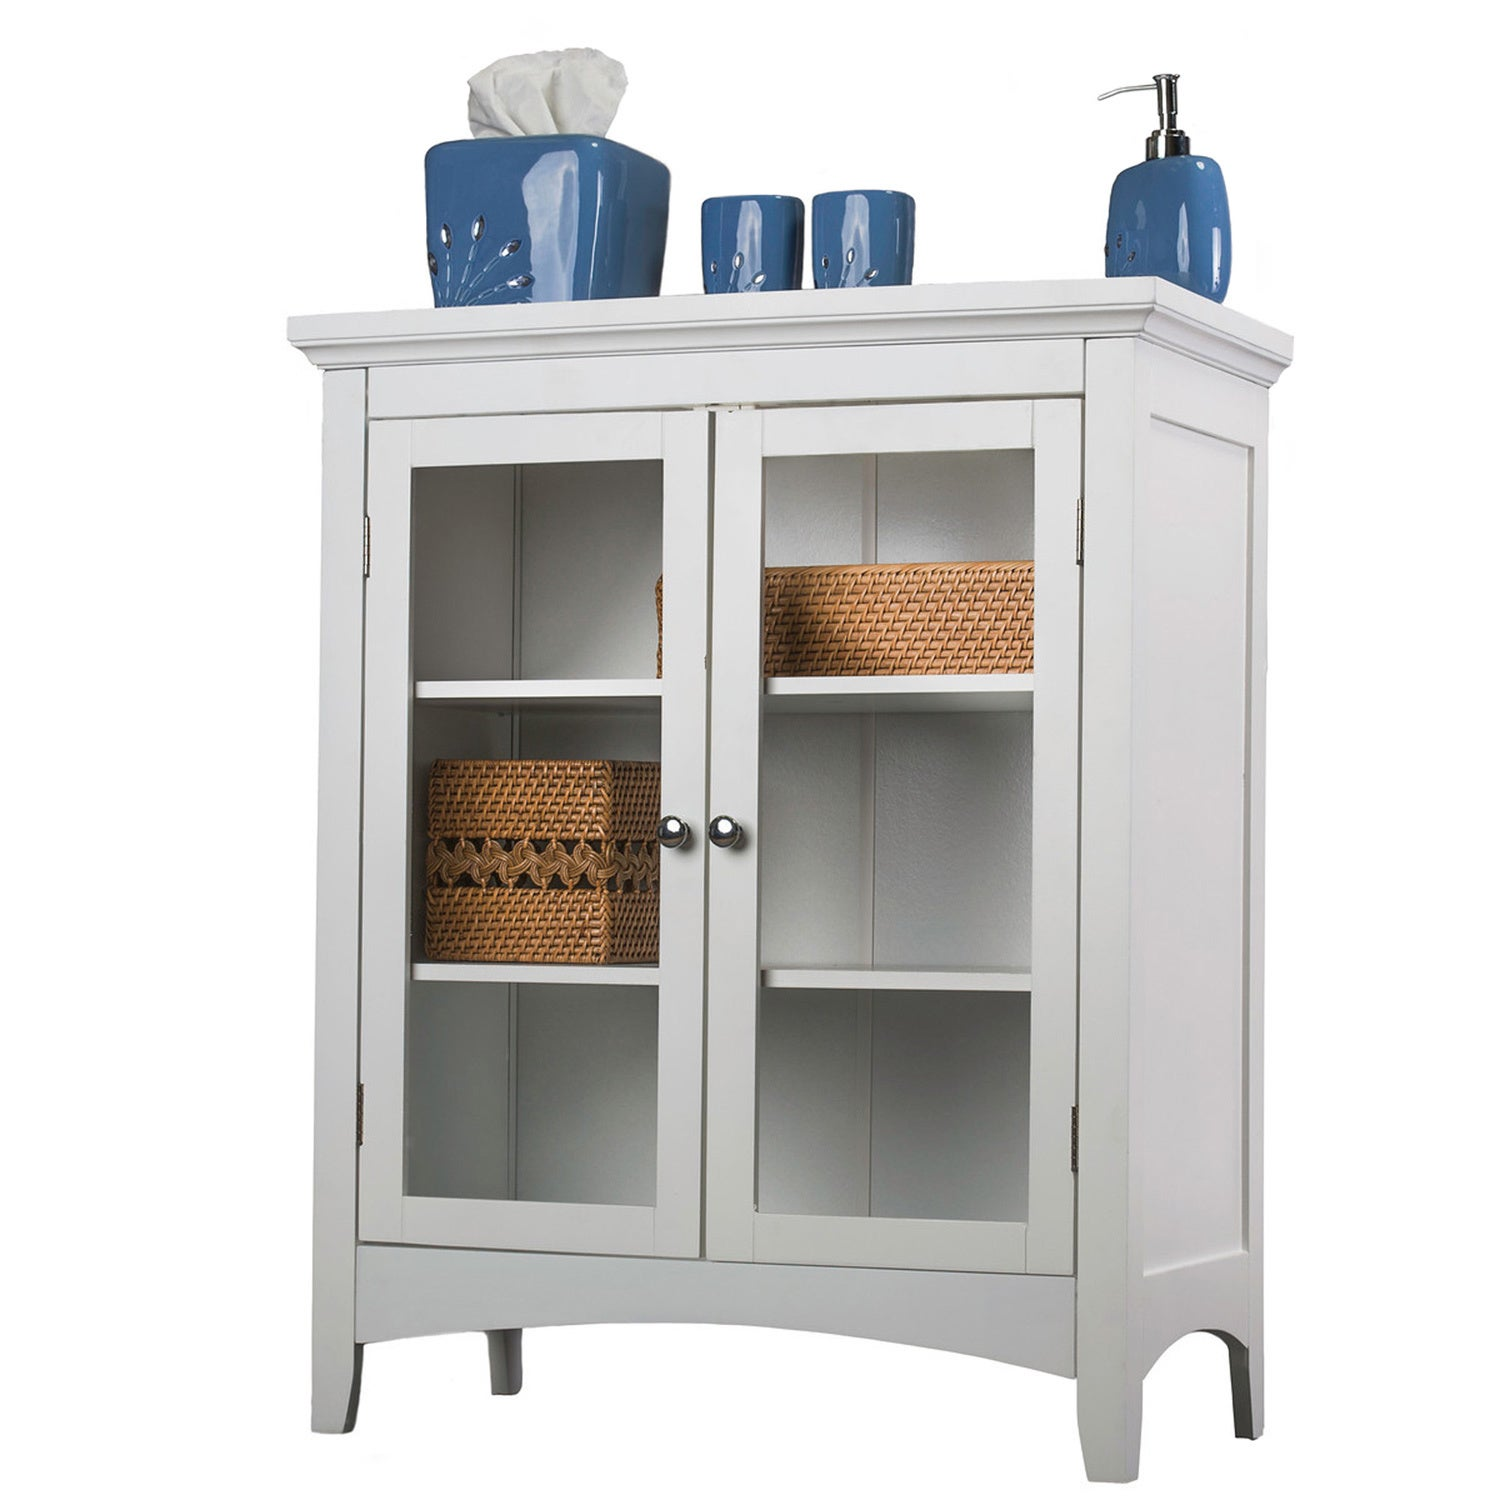 Classique white double floor cabinet overstock shopping - Small floor cabinet for bathroom ...